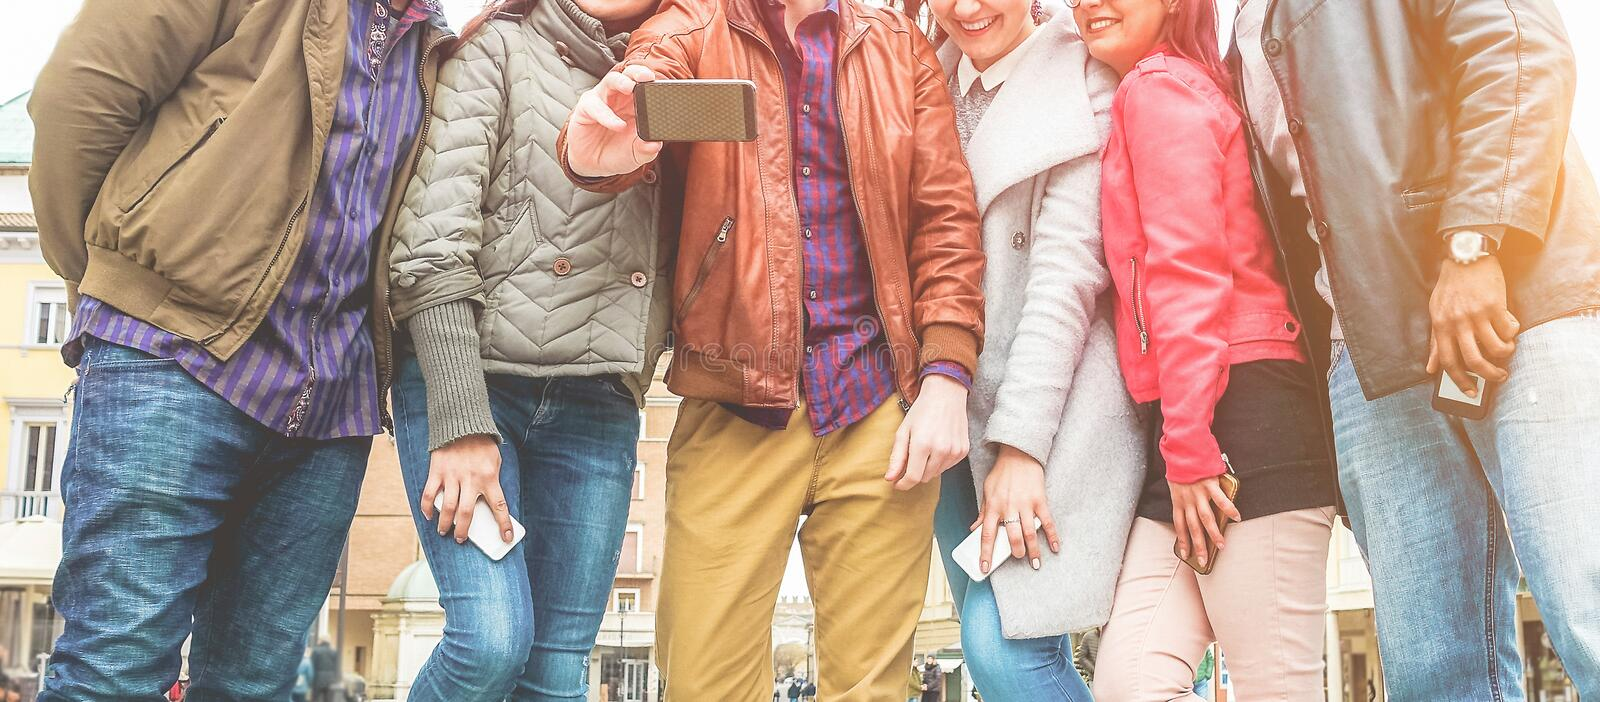 Happy millennials friends making video with smartphone - Young student people have fun with new trends technology - Tech, Youth stockfoto